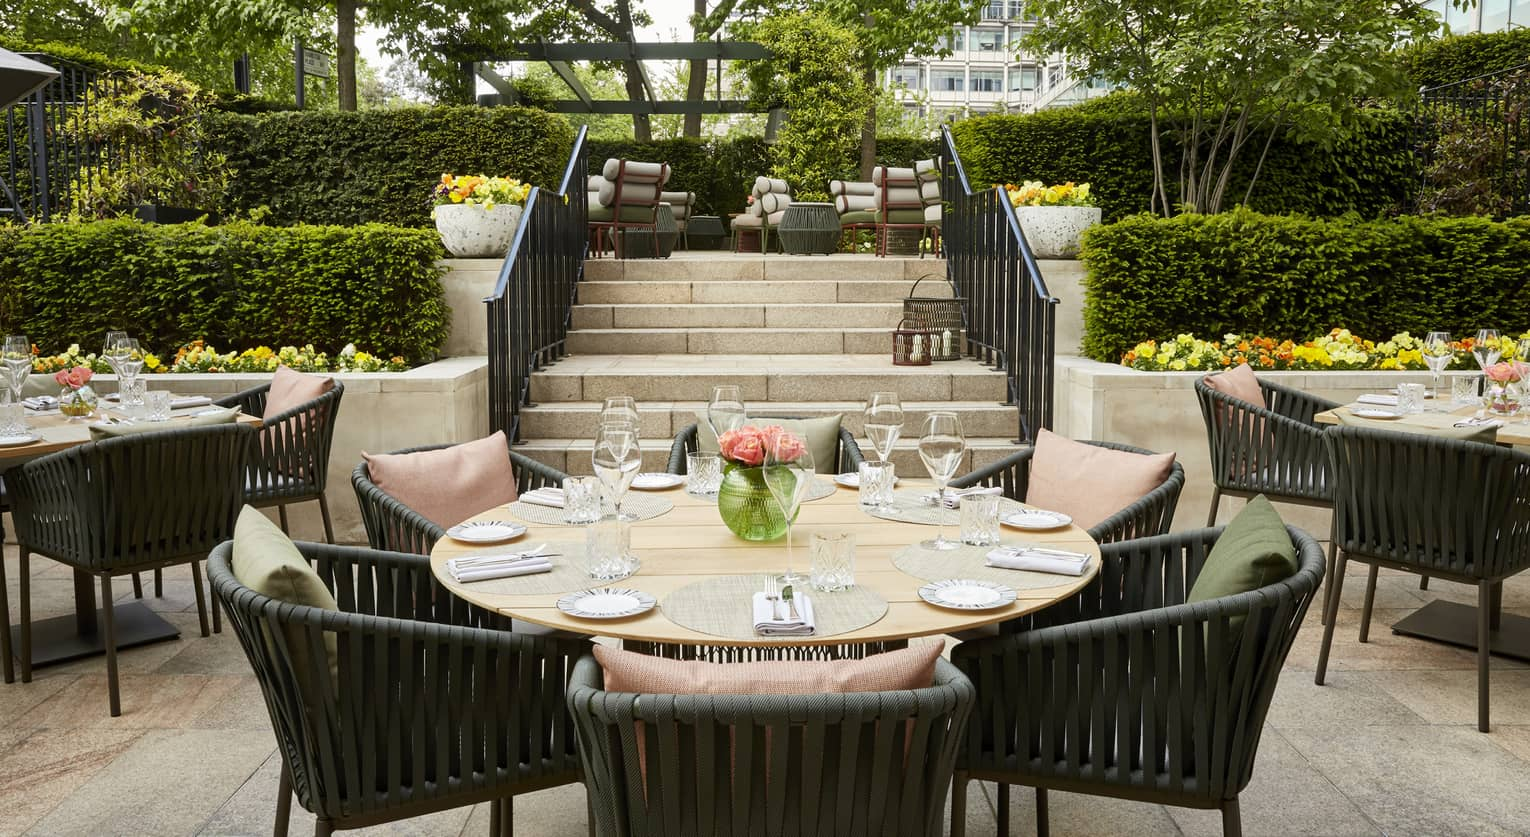 Round tables outside are decorated with place-settings and glasses for a meal